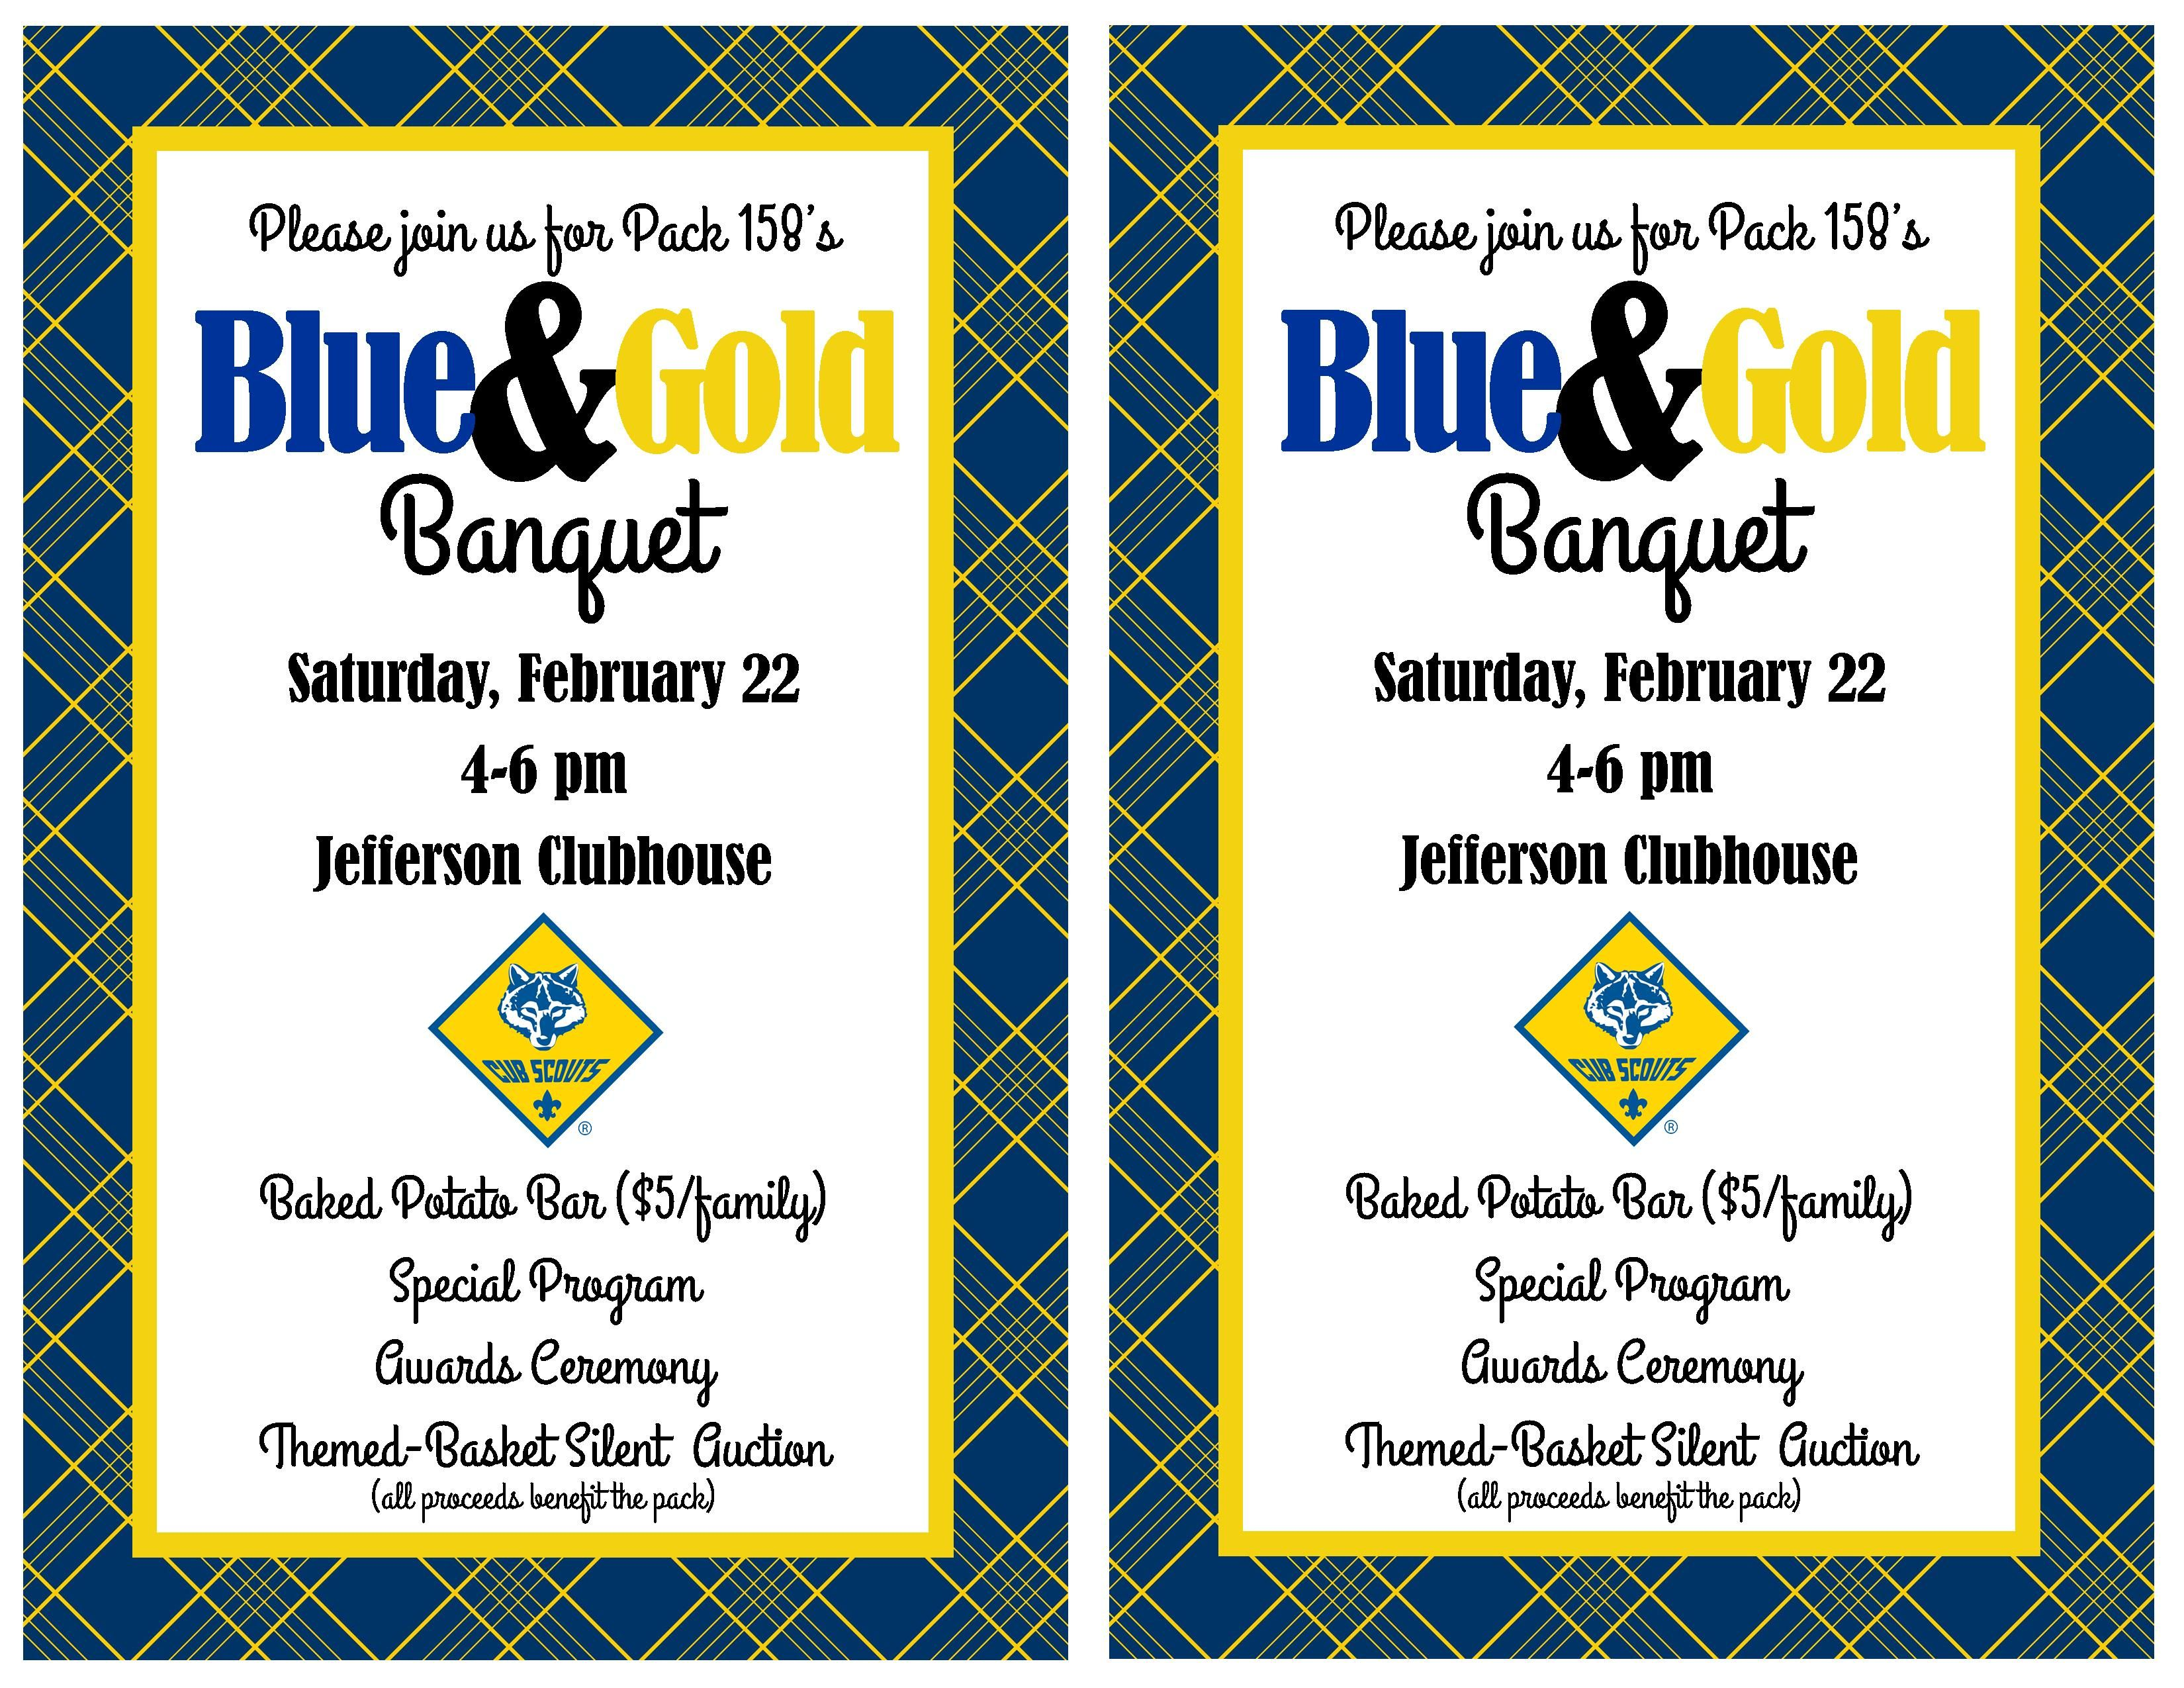 another idea for a cute blue gold banquet invitation cub scout blue gold pinterest. Black Bedroom Furniture Sets. Home Design Ideas